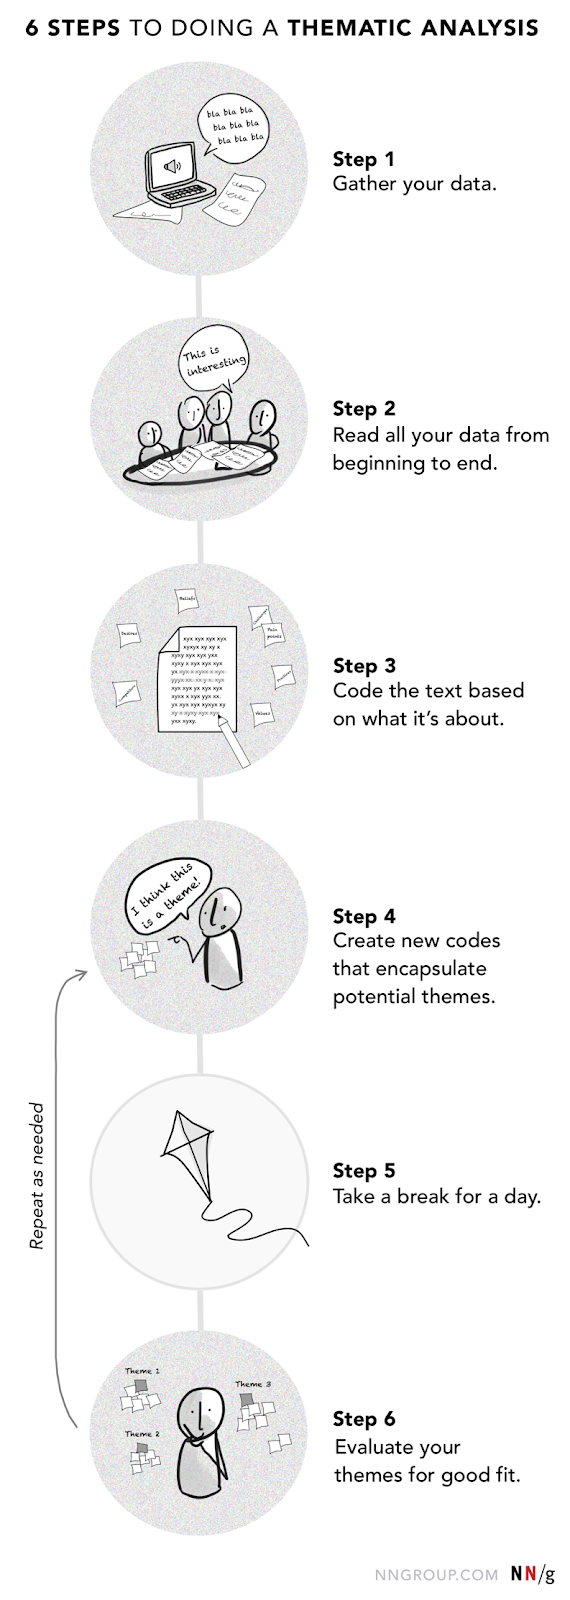 A roadmap illustration overview of 6 steps to perform a thematic analysis. Step 1: Gather your data. Step 2: Read all your data from beginning to end. Step 3: Code the text based on what it's about. Step 4: Create new codes that encapsulate potential themes. Step 5: Take a break for a day. Step 6: Evaluate your themes for good fit.